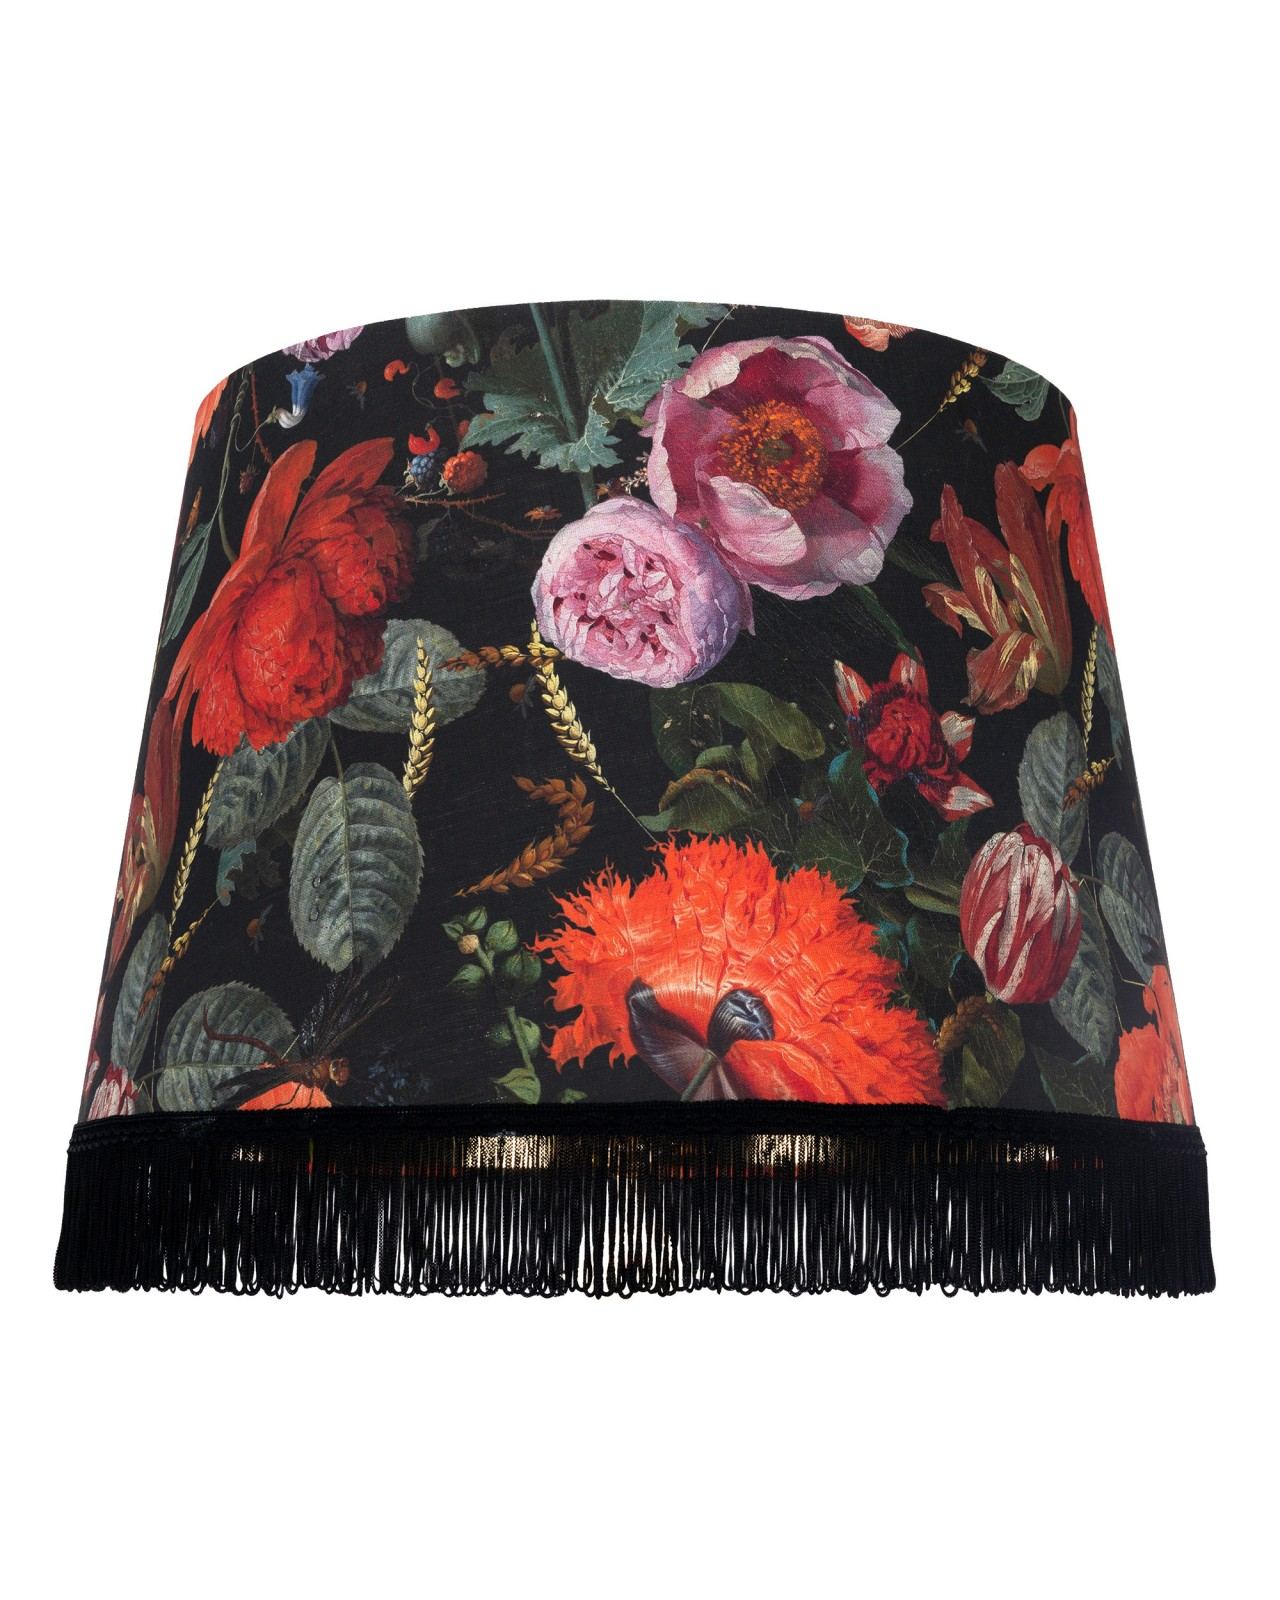 FLOWERS OF THE LADY CHELSEA Table Lamp